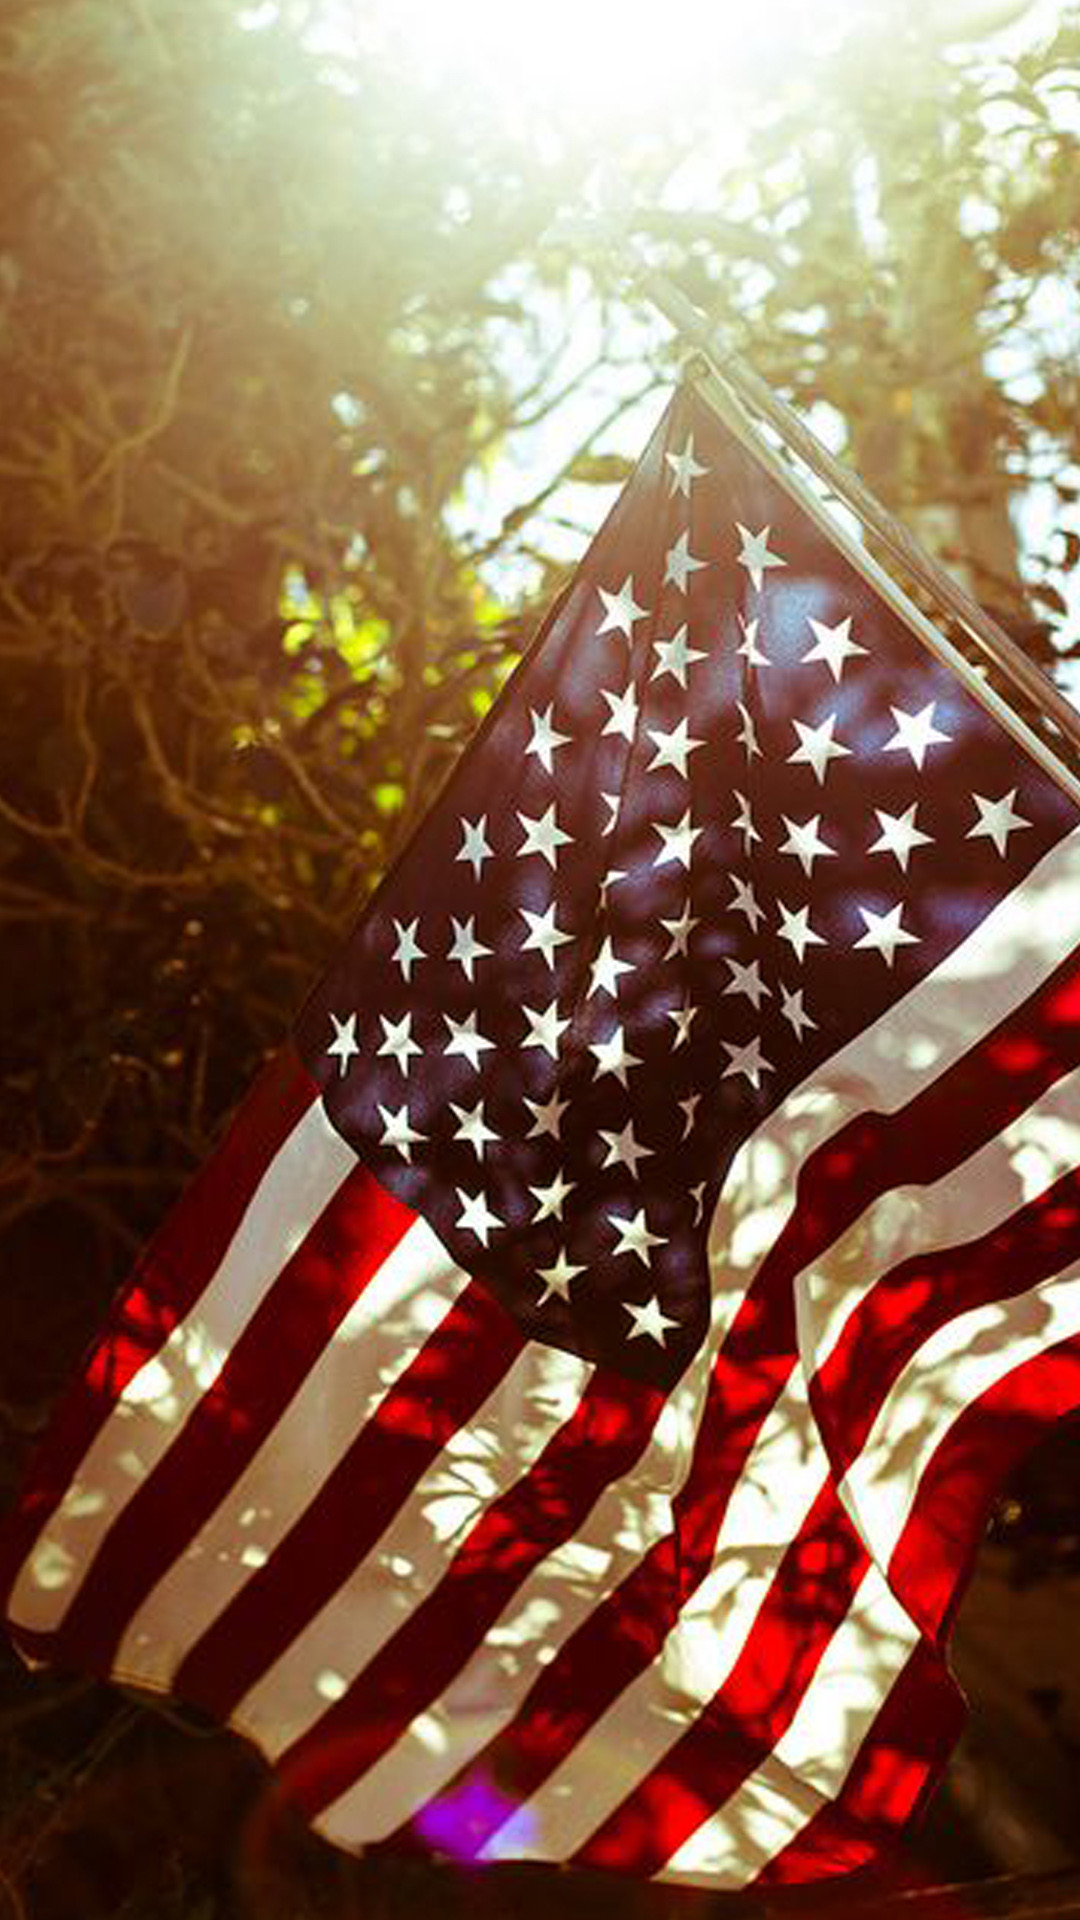 American flag screensavers and wallpaper 73 images 2588x1719 usa flag waving wallpaper hd 1080p free hd wallpapers voltagebd Gallery